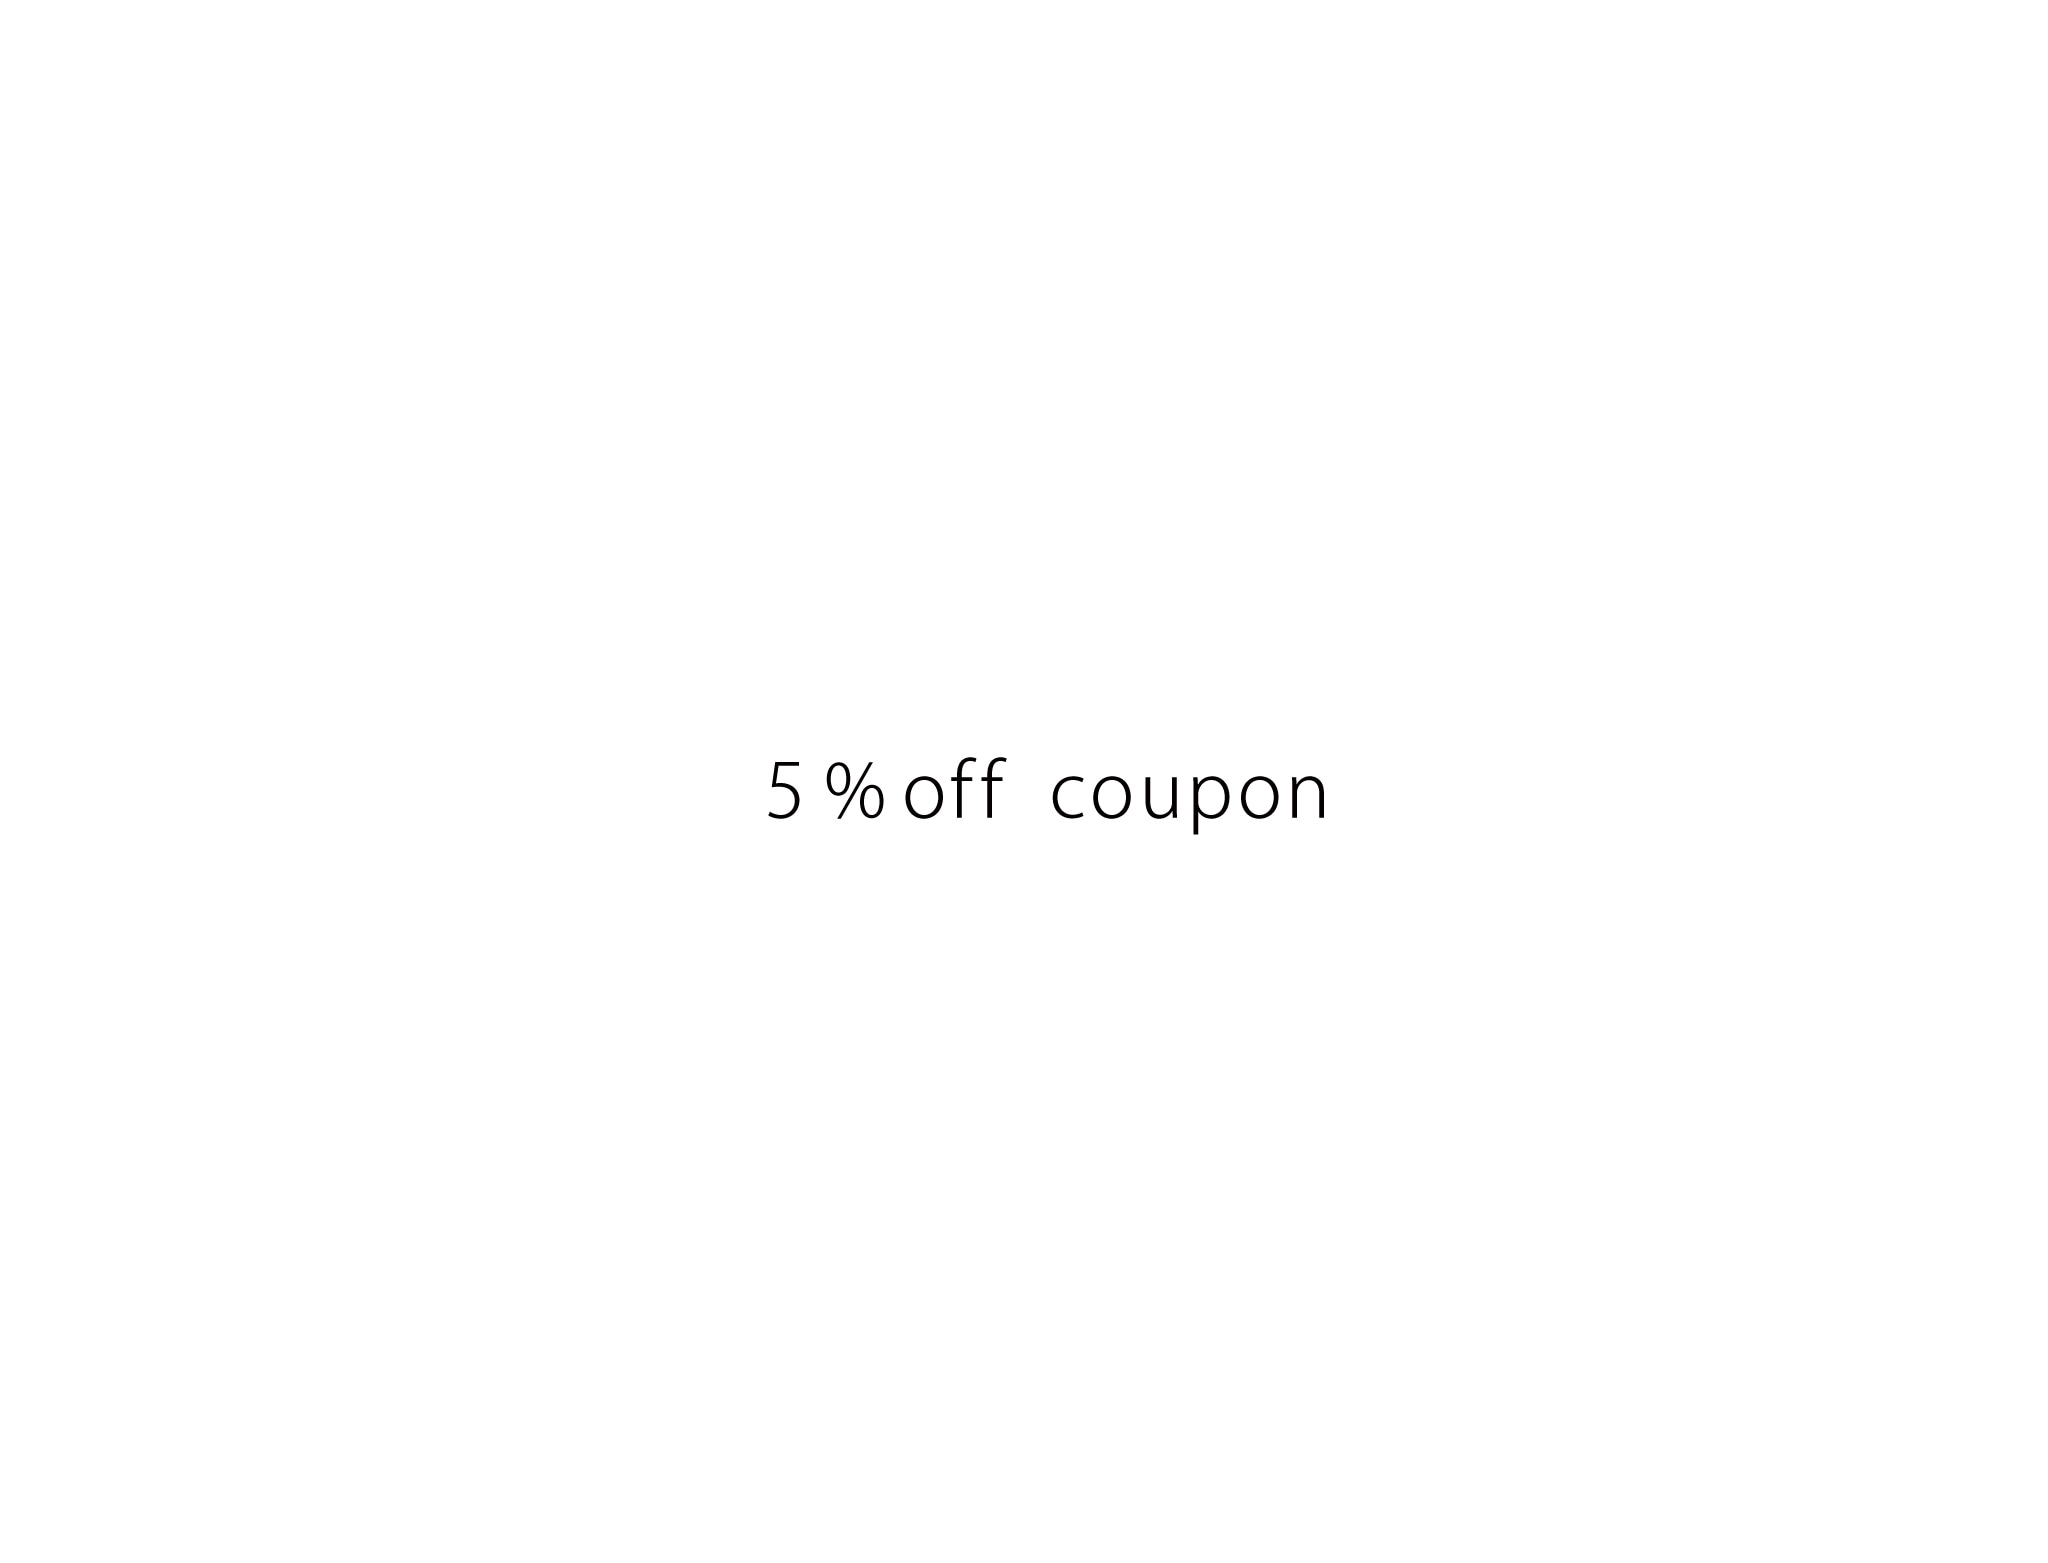 【 2021/3/18 -  4/14 】5%off クーポンプレゼント!